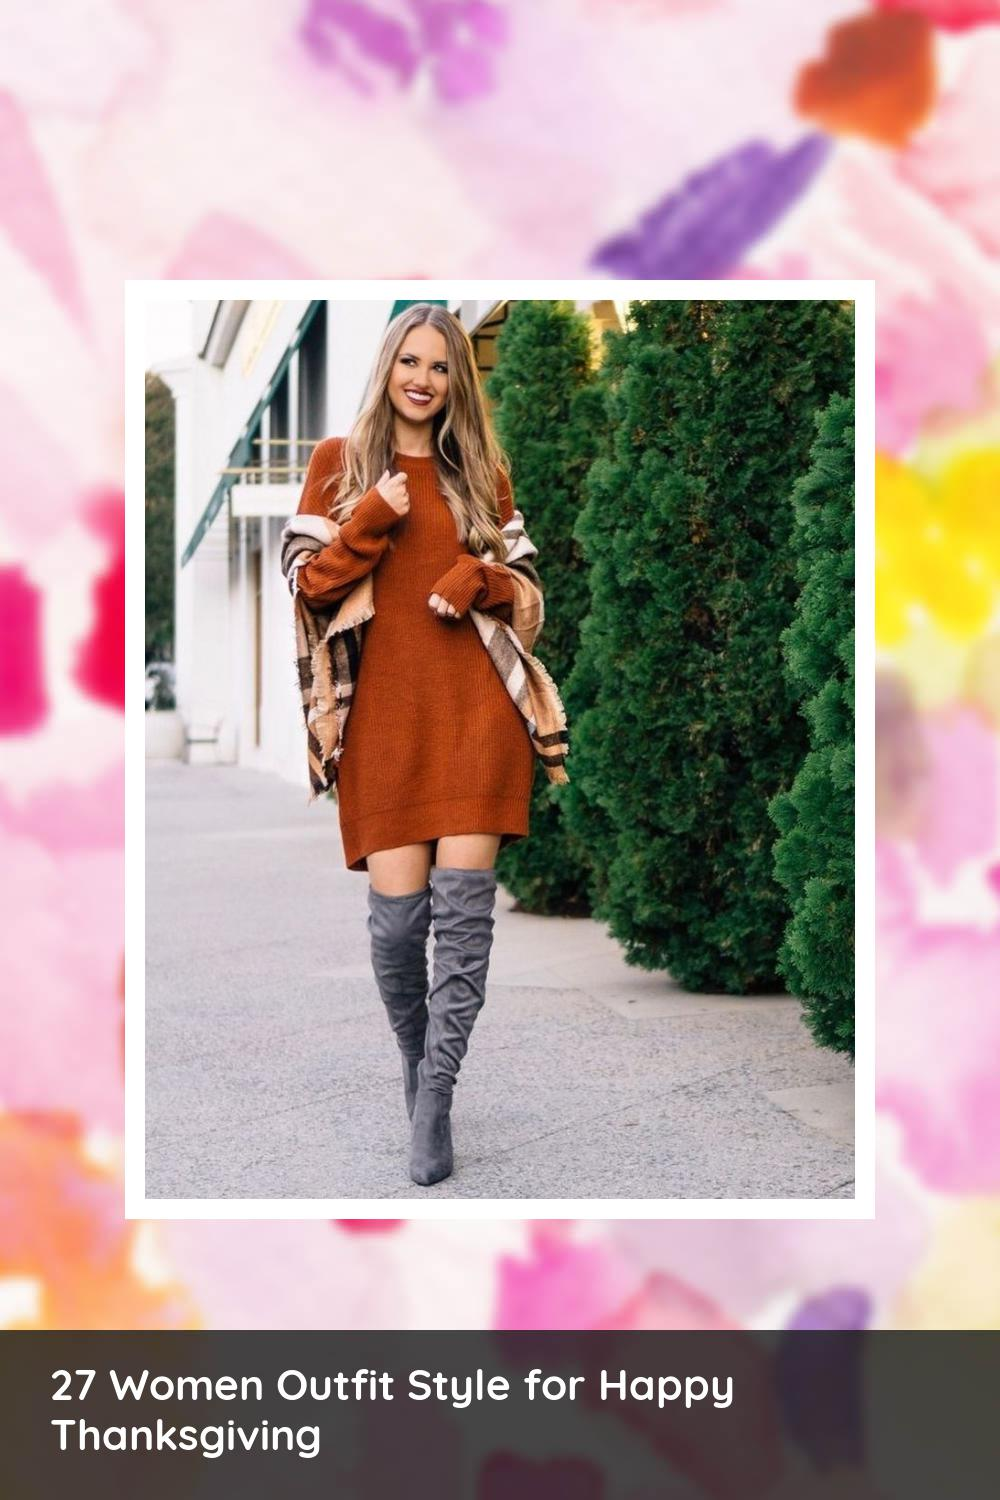 27 Women Outfit Style for Happy Thanksgiving 4